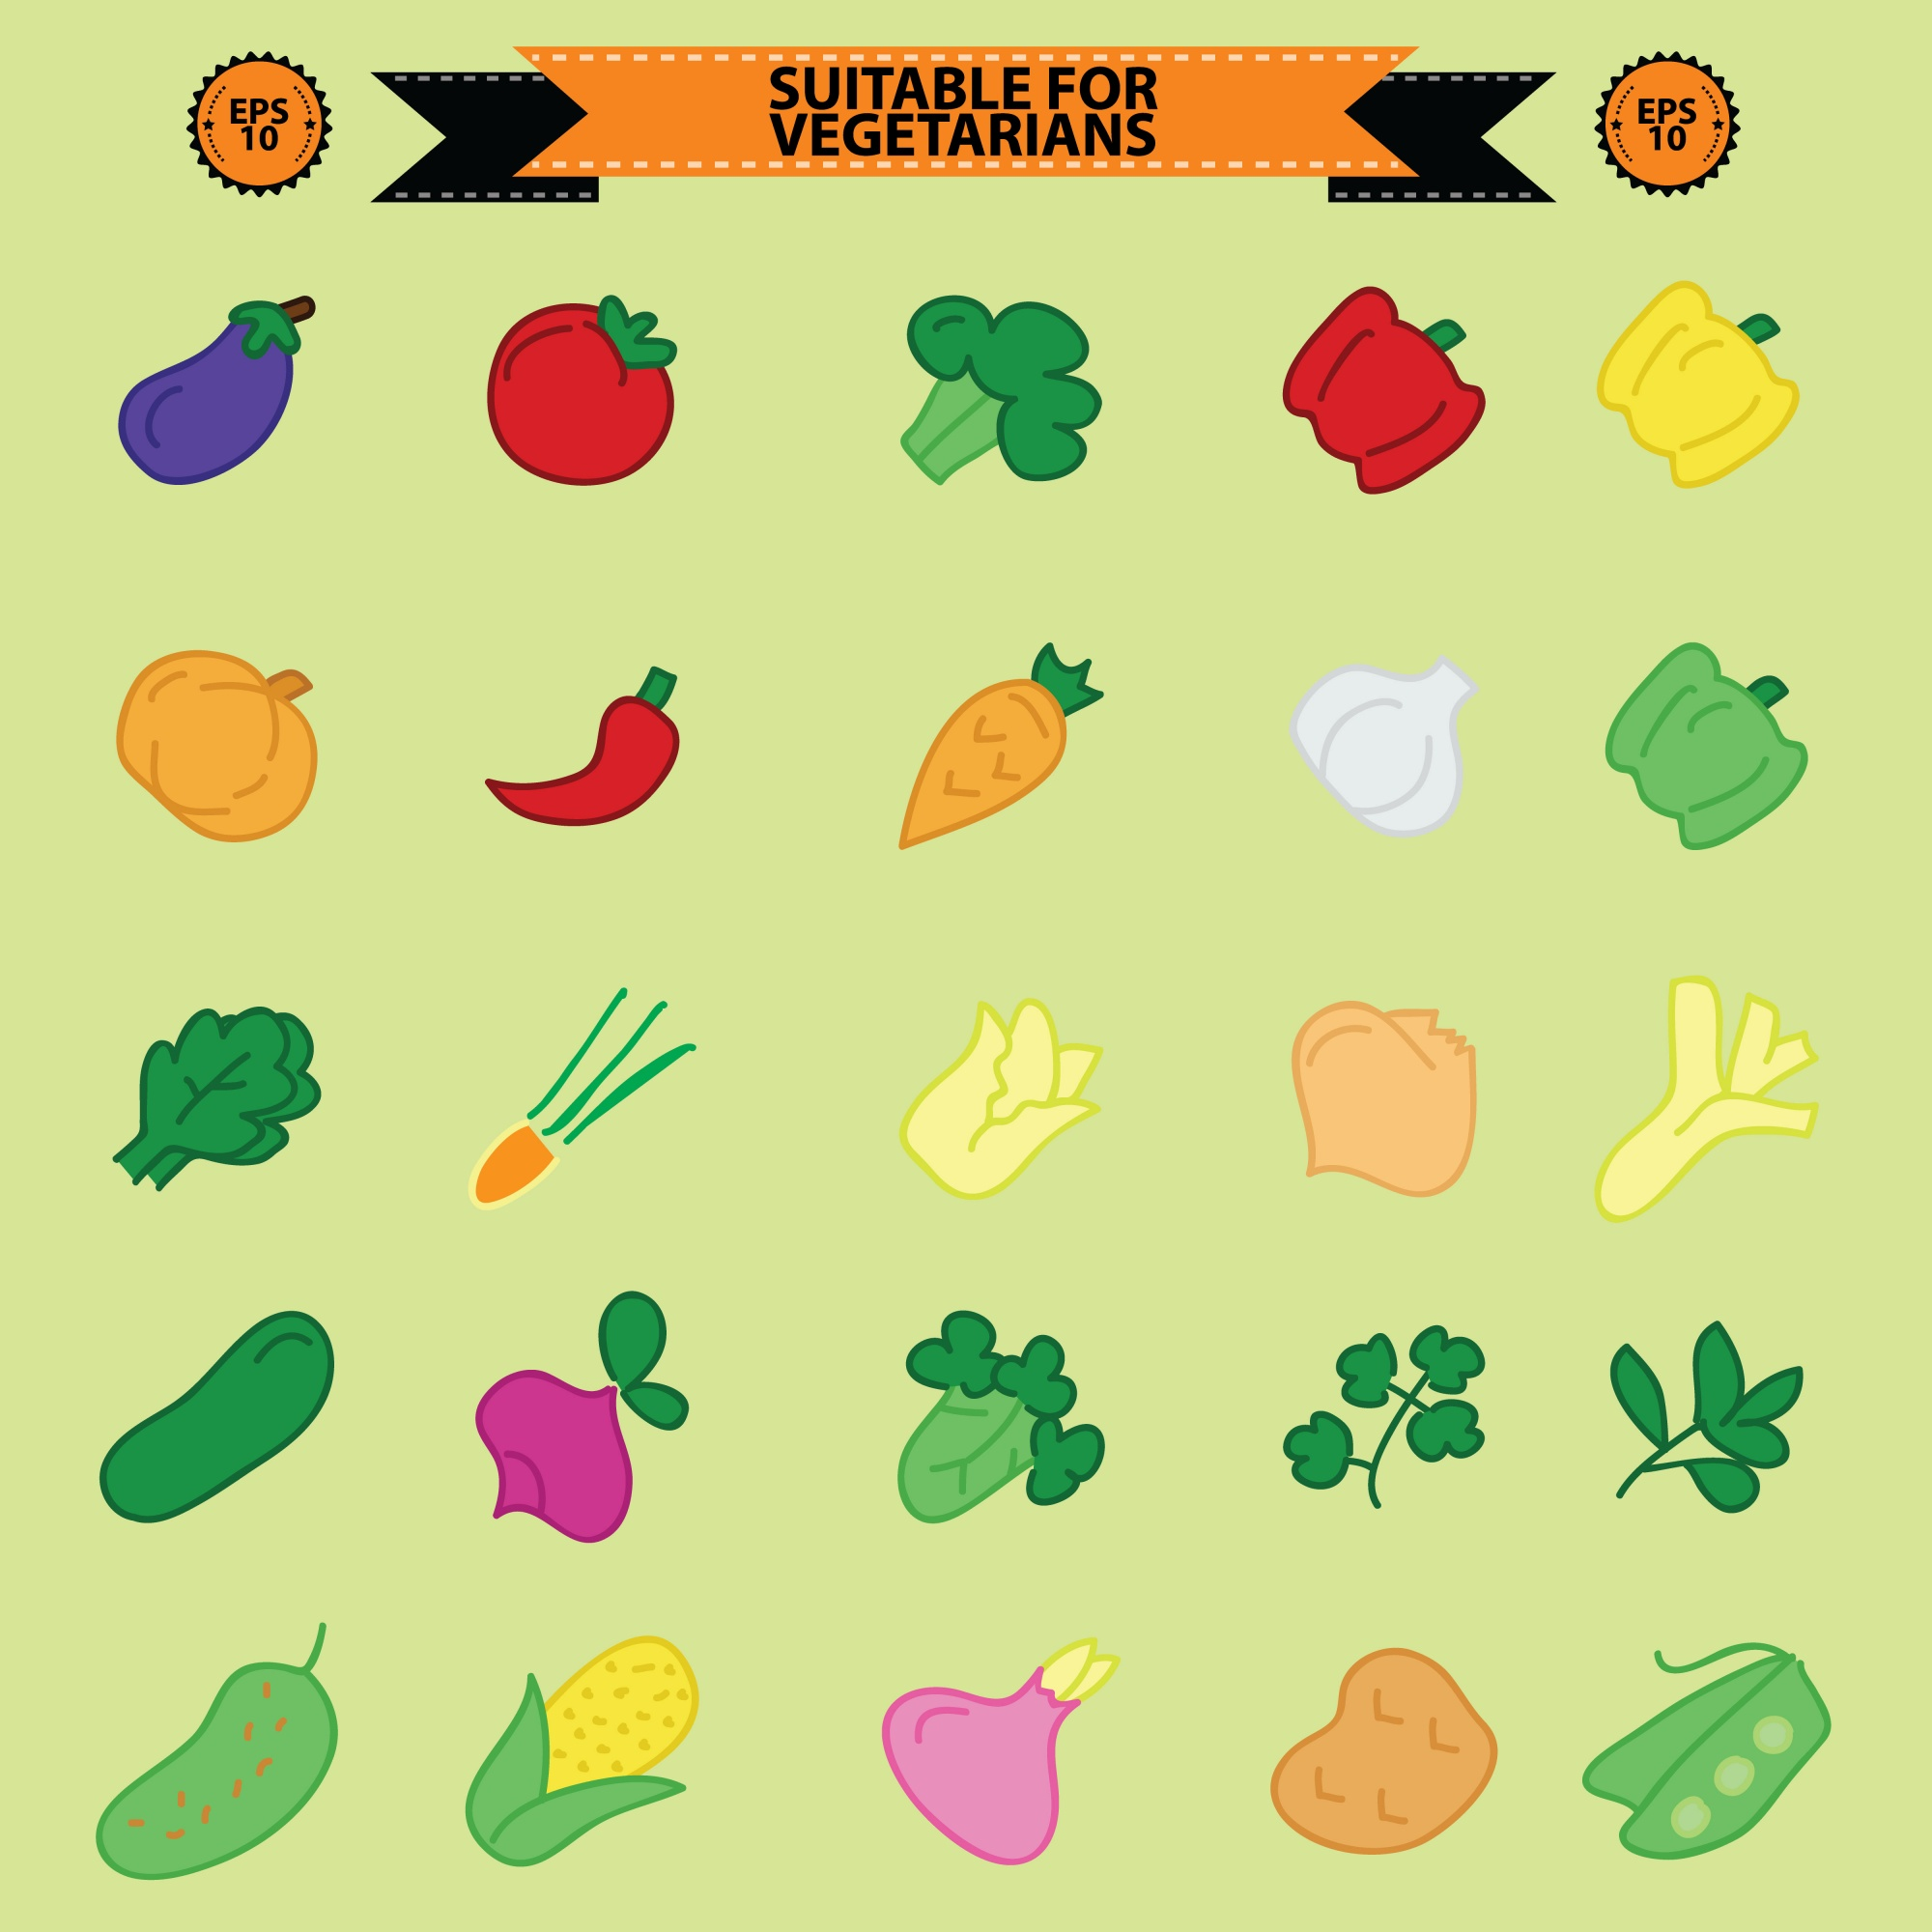 Set of vegetarian food icons, vegan friendly icons, badges, stamps and emblems